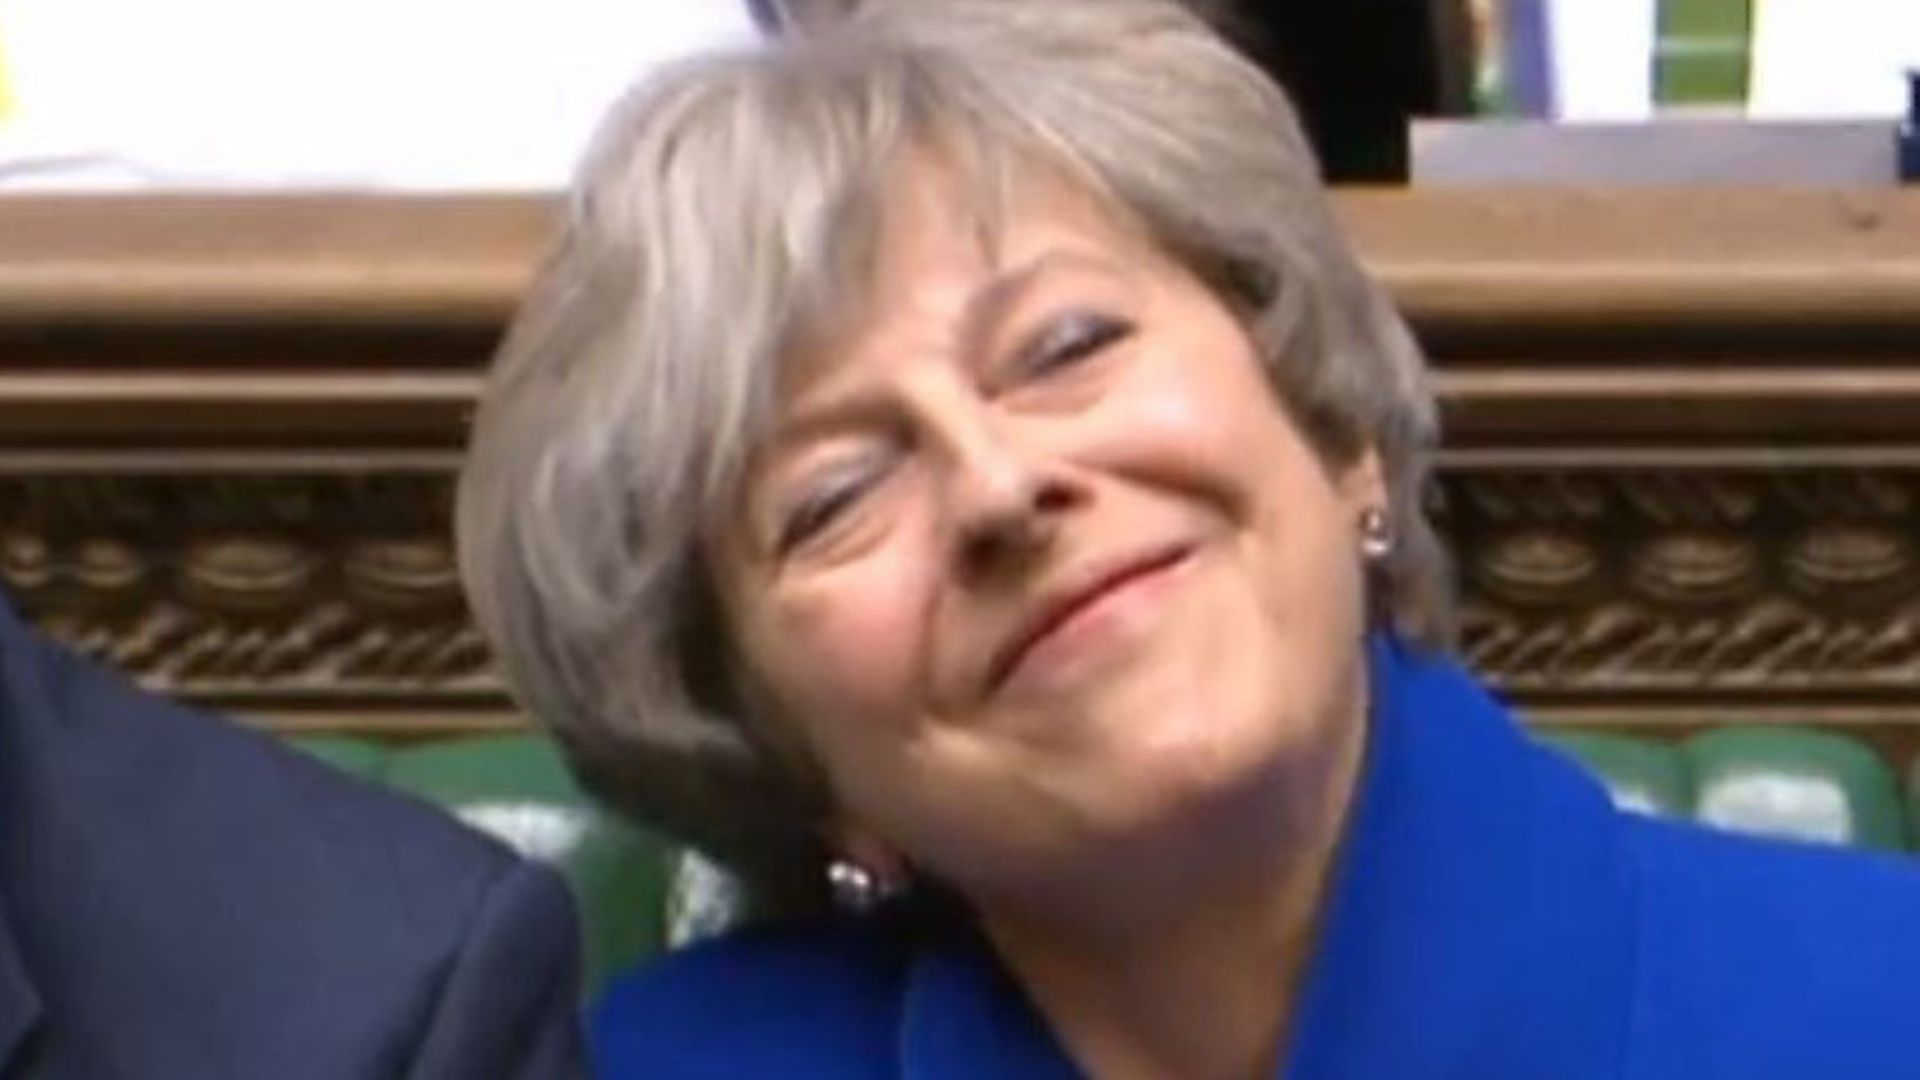 Prime Minister Theresa May in the House of Commons during PMQs. Photograph: PA Images. - Credit: PA Wire/PA Images